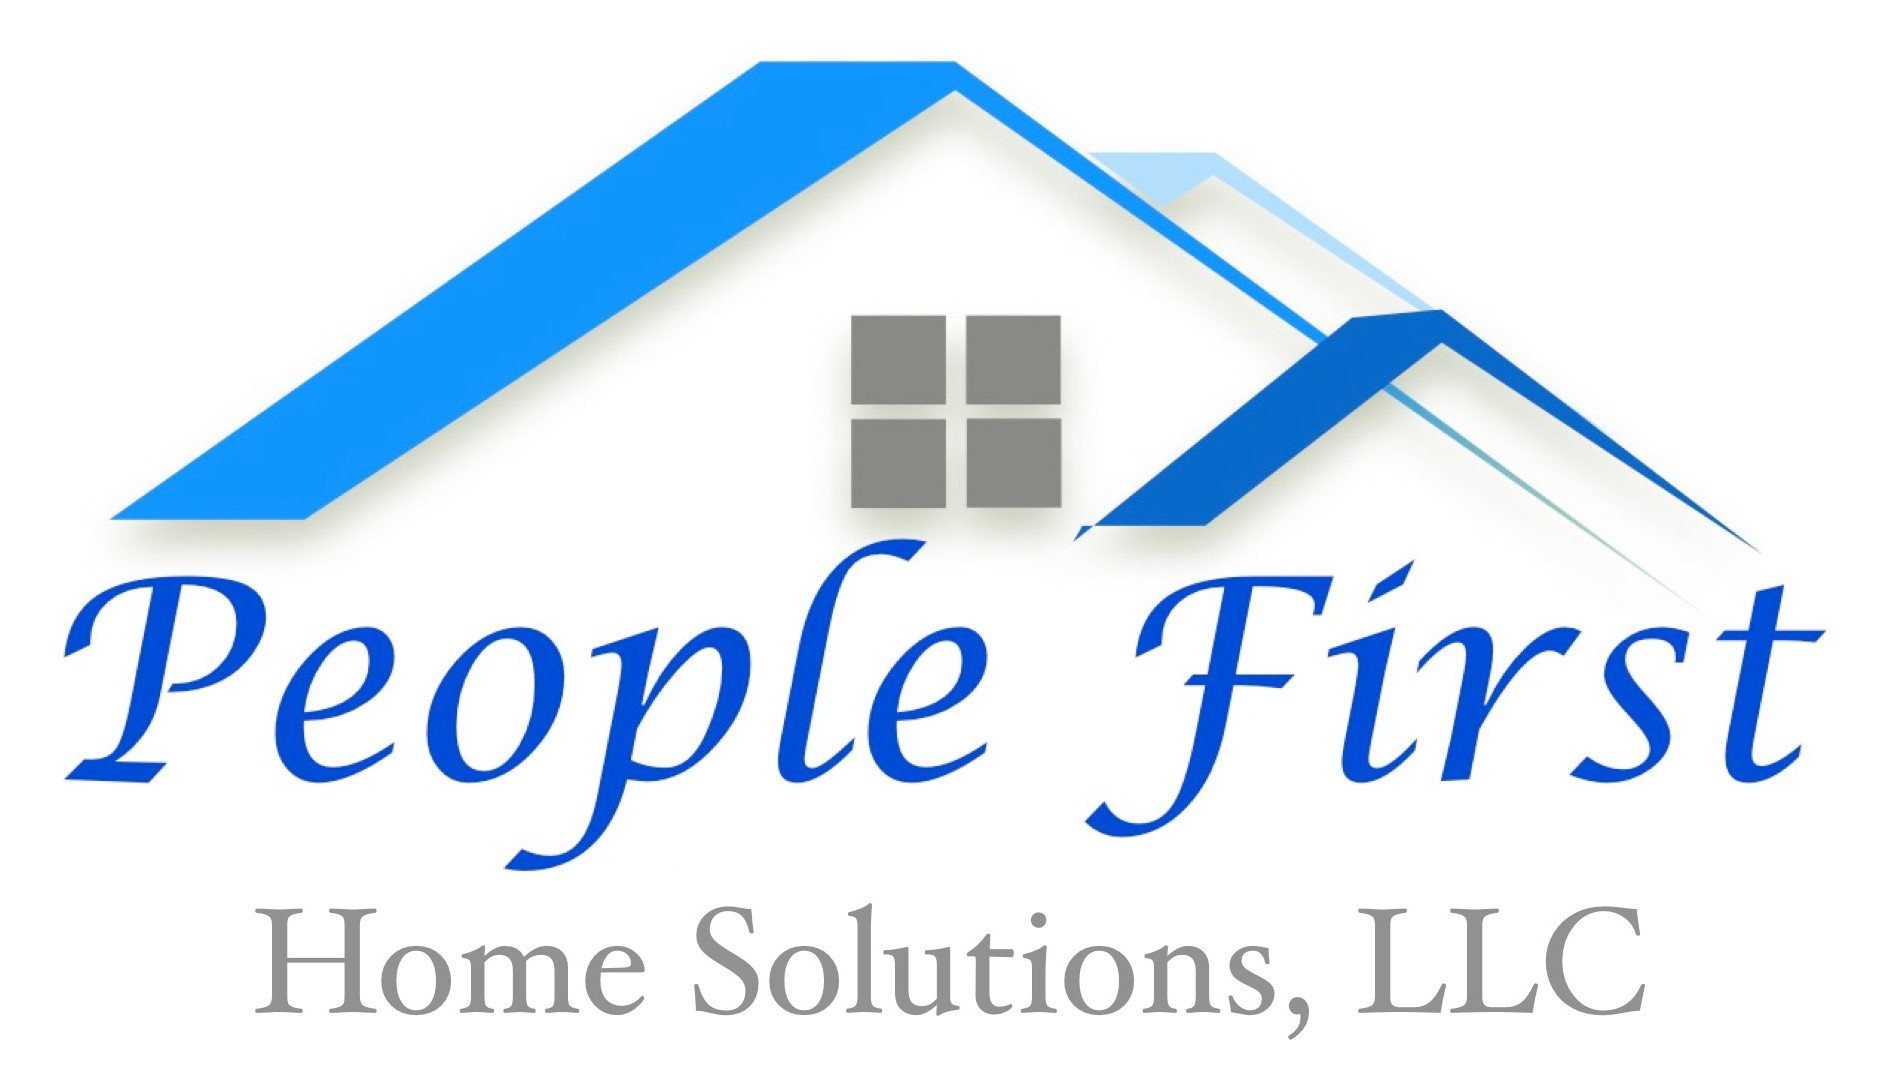 People First Home Solutions, LLC